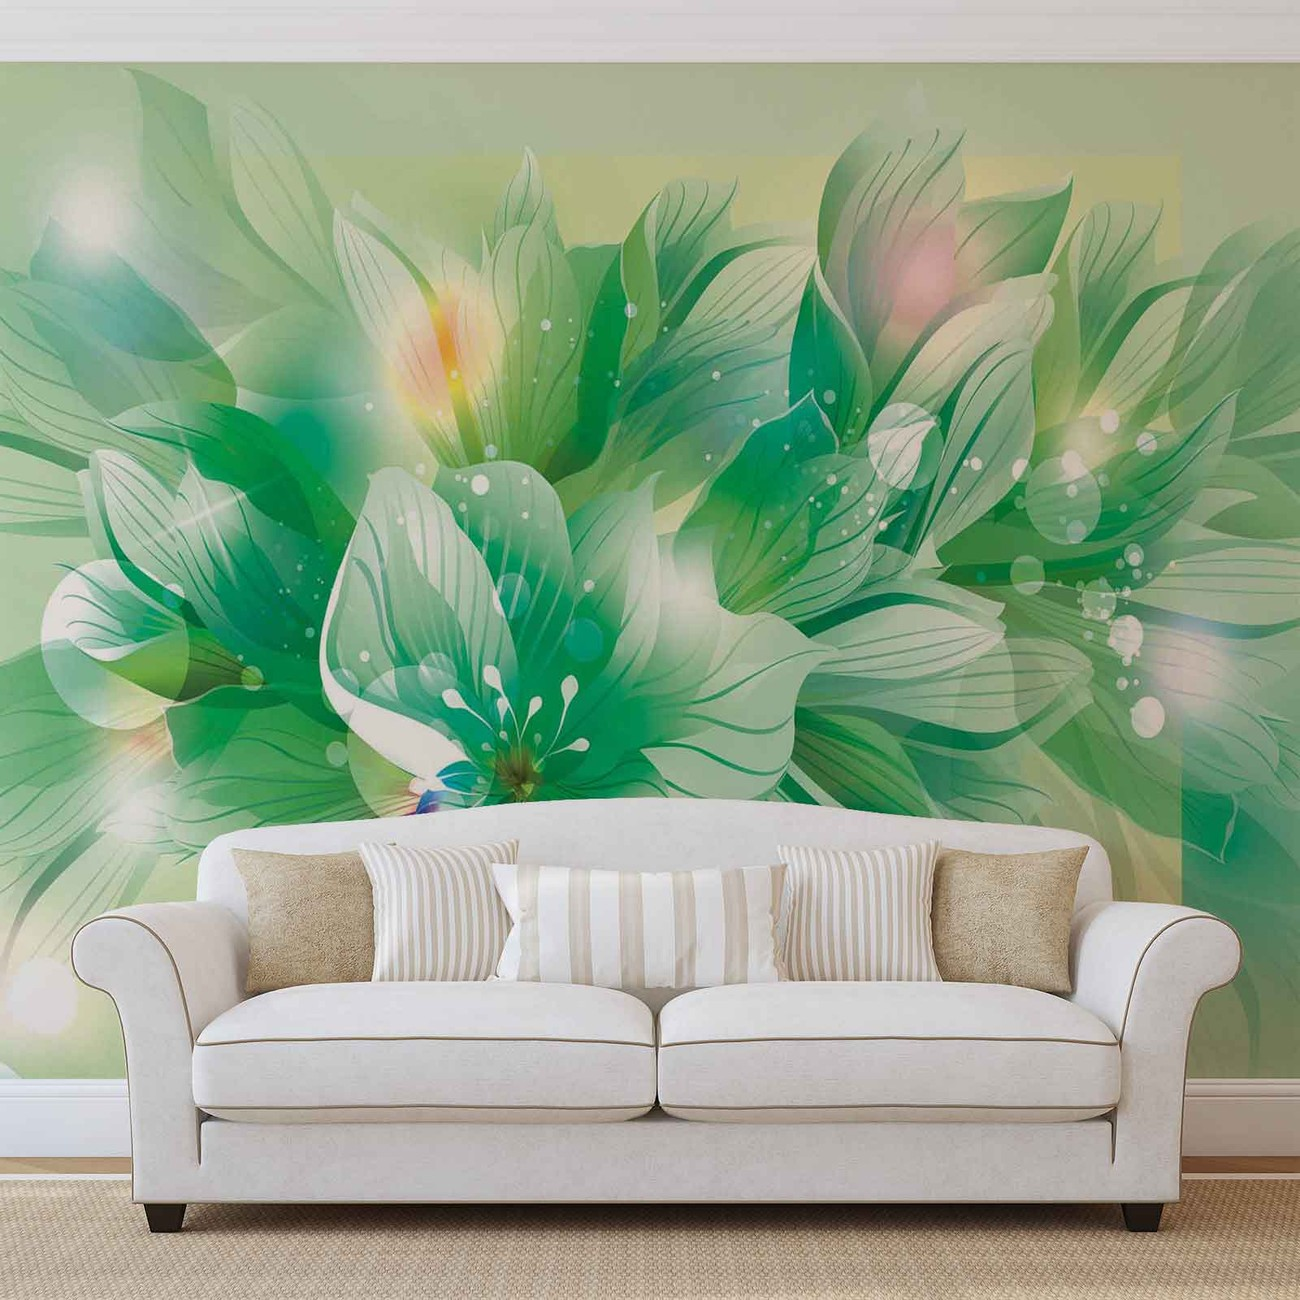 flowers nature green wall paper mural buy at europosters. Black Bedroom Furniture Sets. Home Design Ideas